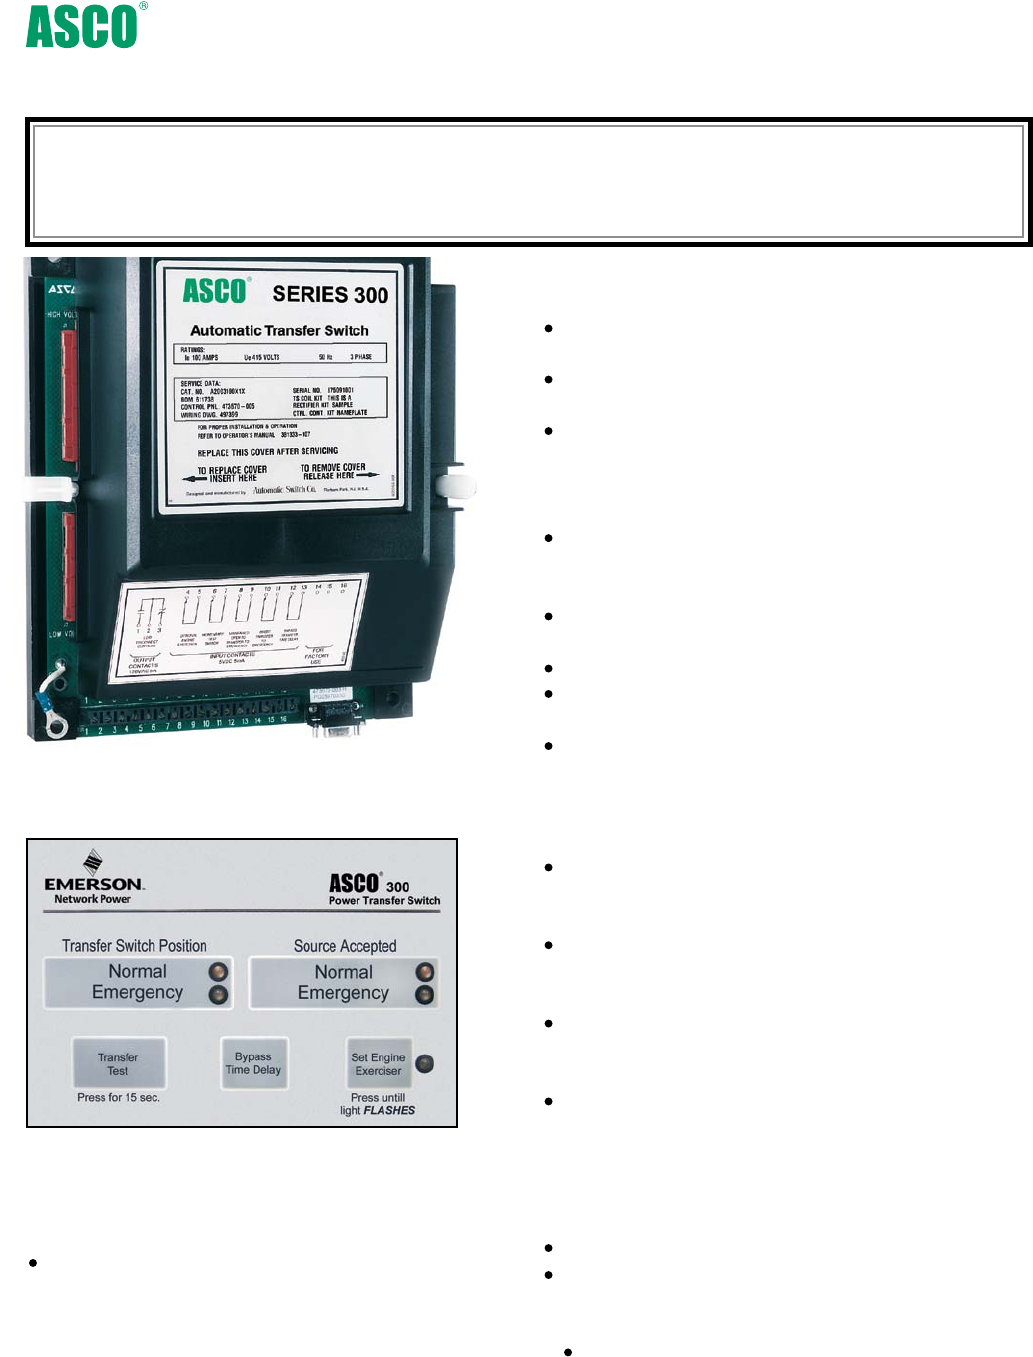 Emerson Asco Series 300 Group 1 Power Transfer Switch Brochures And Wiring Diagram Control Display Panel